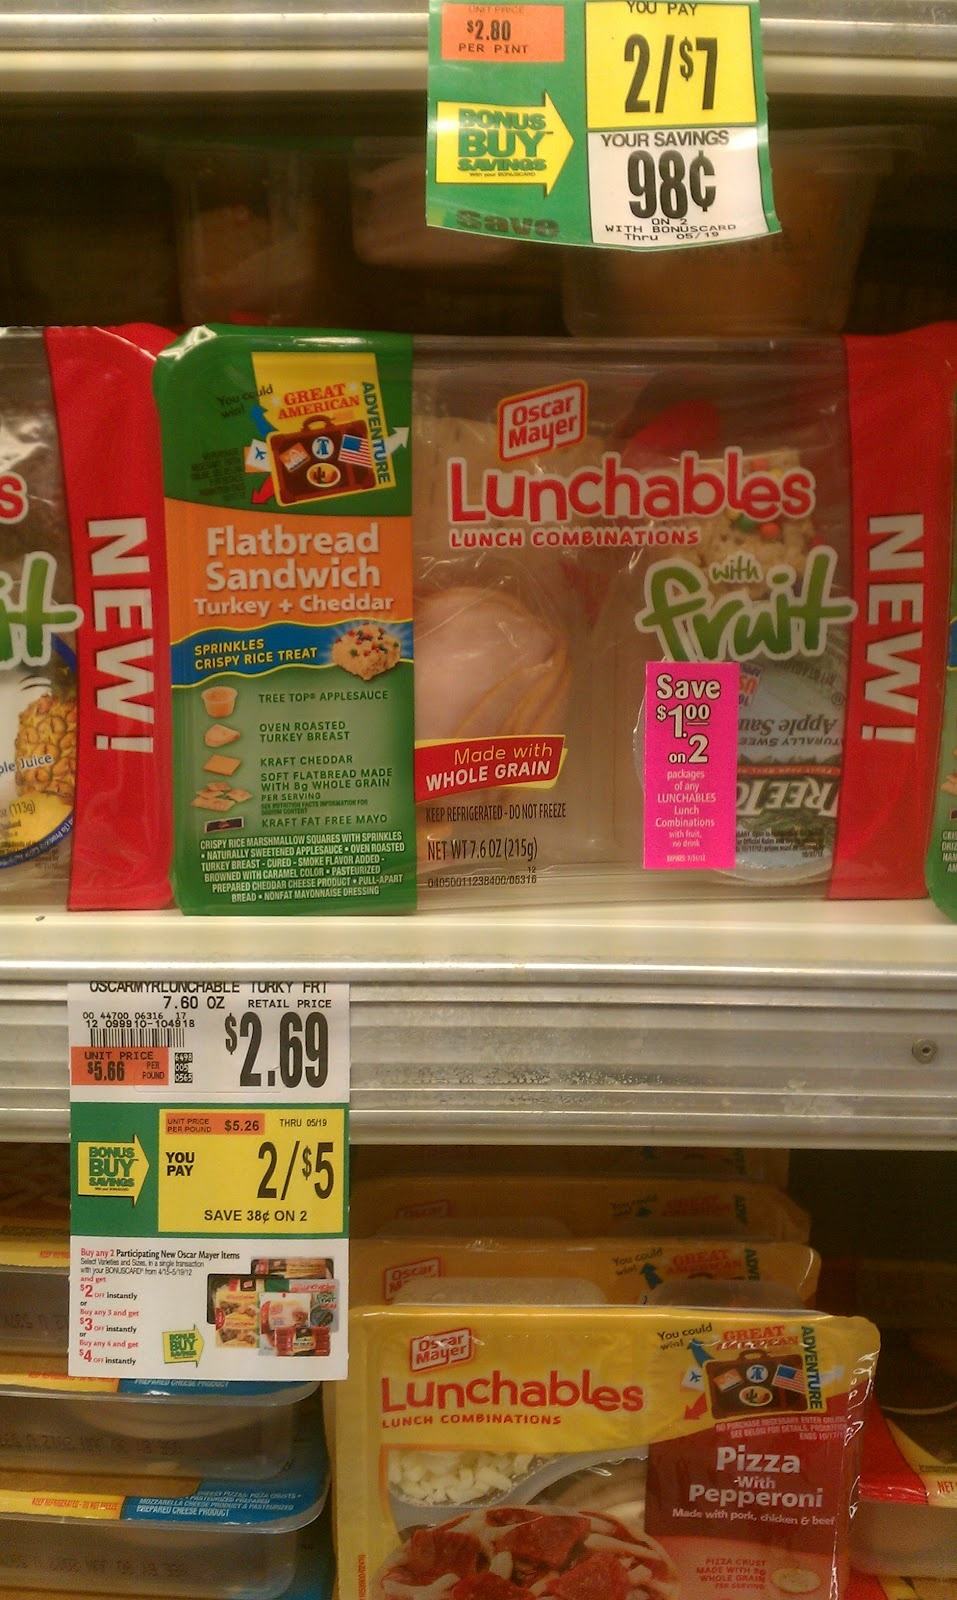 Coupons Oscar Mayer Lunchables / Kindle Deals Cyber Monday 2018 - Free Printable Oscar Mayer Coupons